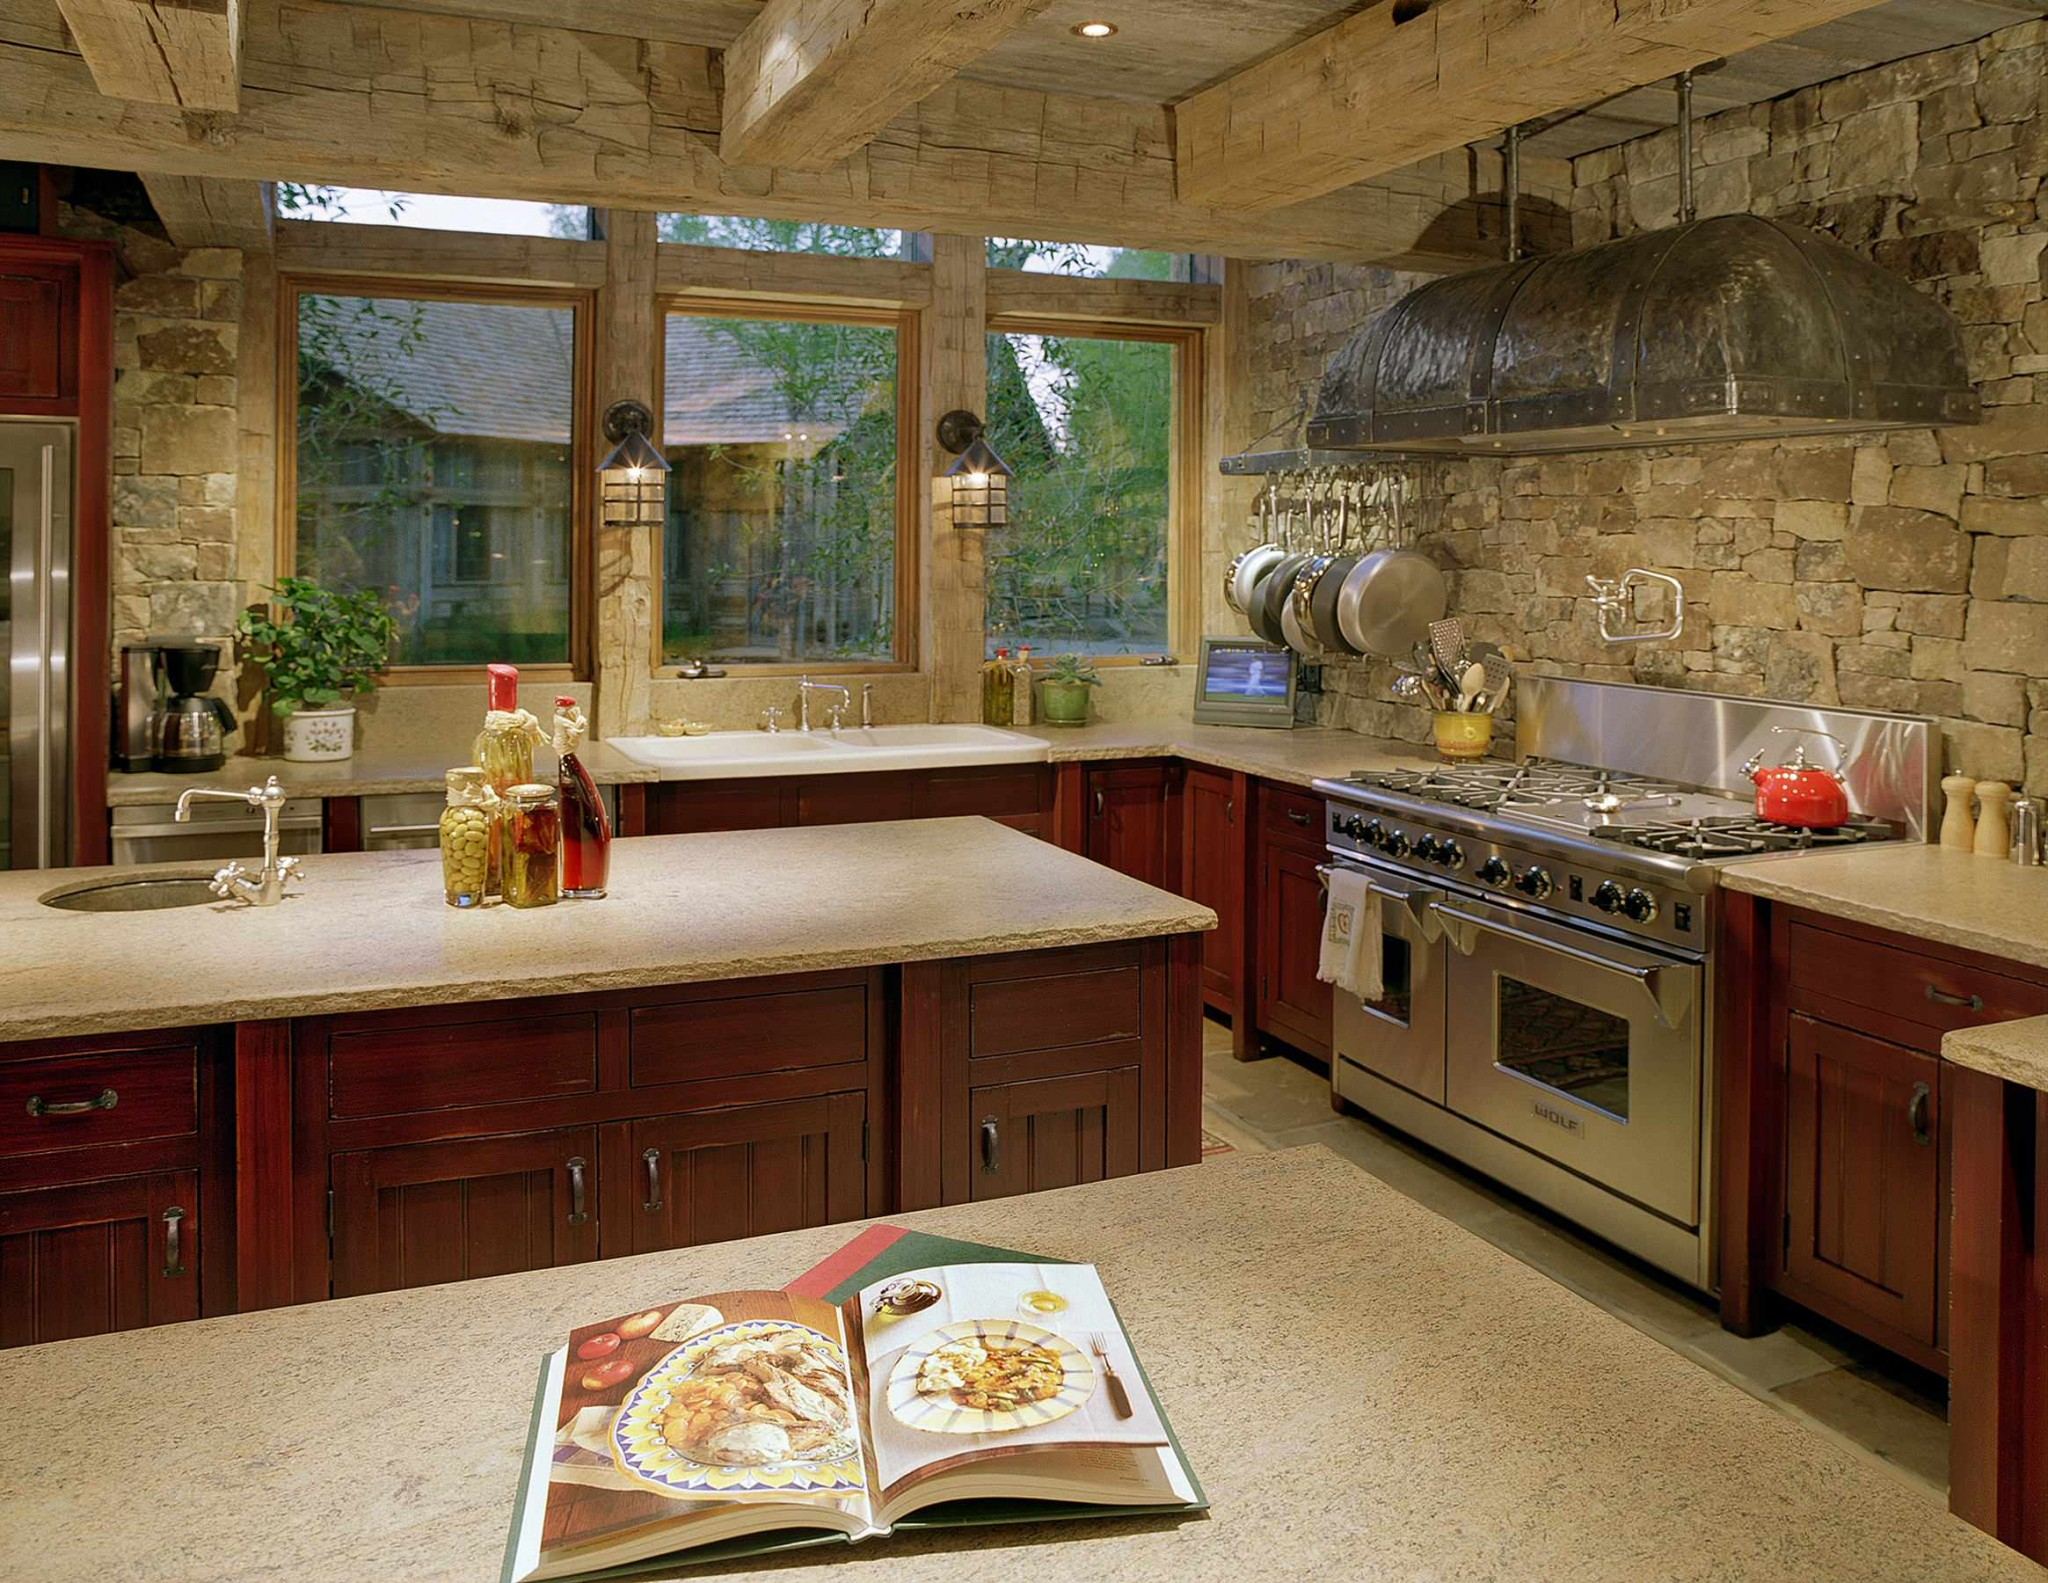 Stone kitchen interior decoration ideas small design ideas Rustic kitchen designs